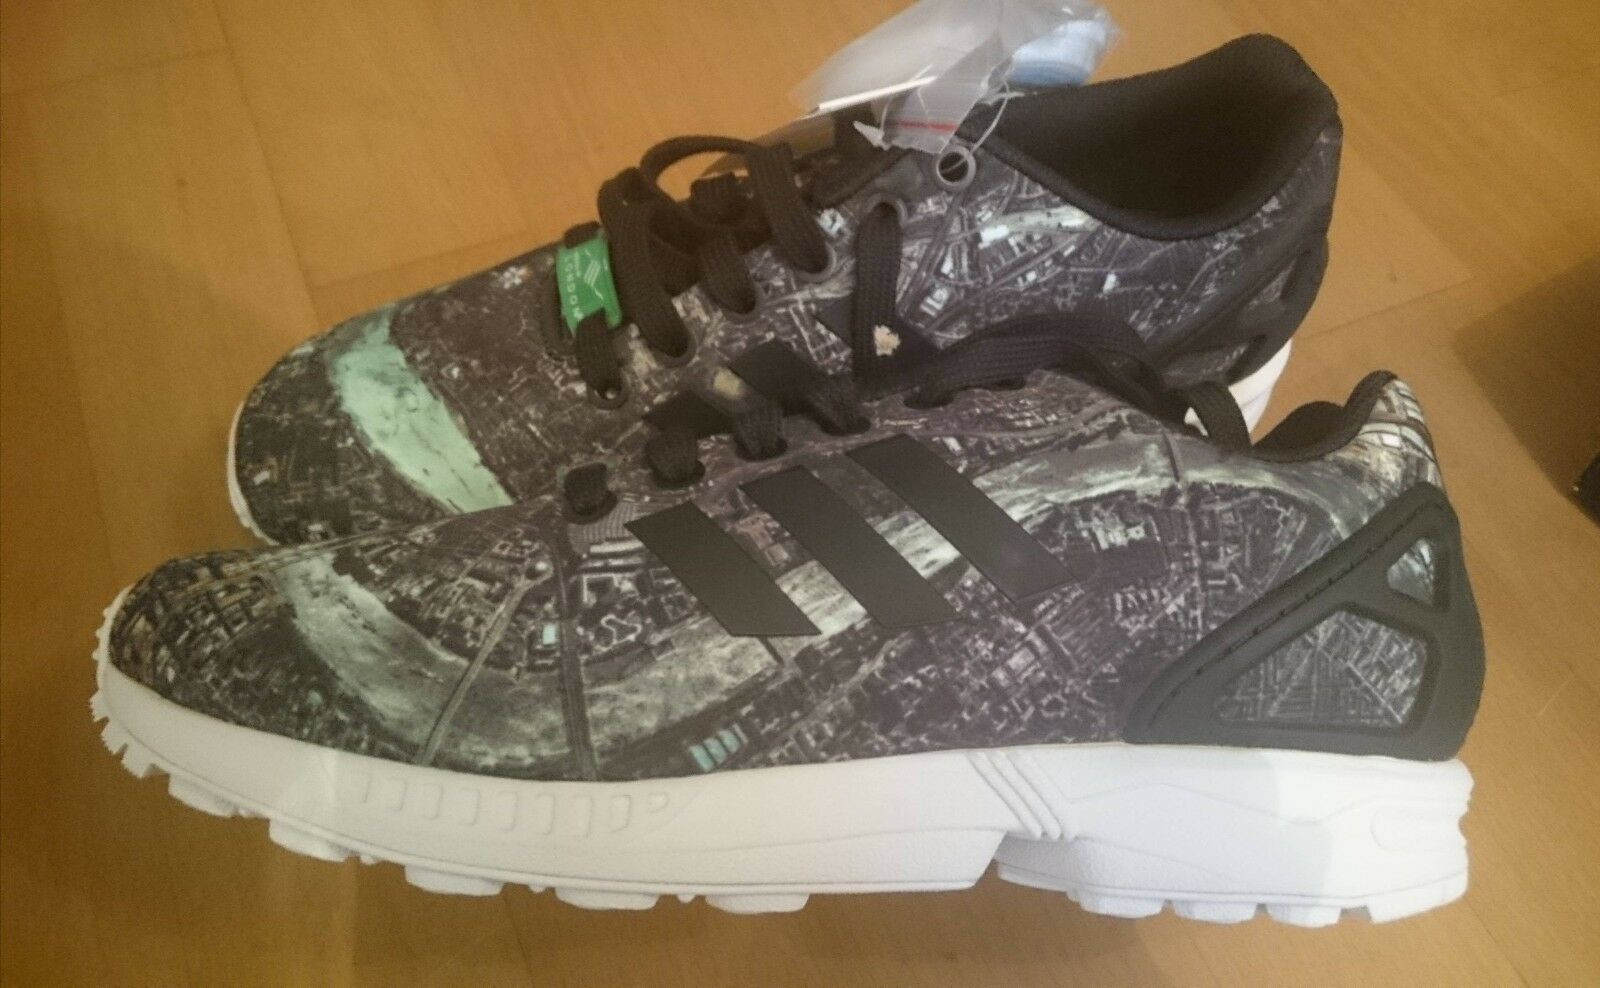 Bdidas London ZX Flux City series 39 1/3 UK 6 US 6,5 Neu rar, limited